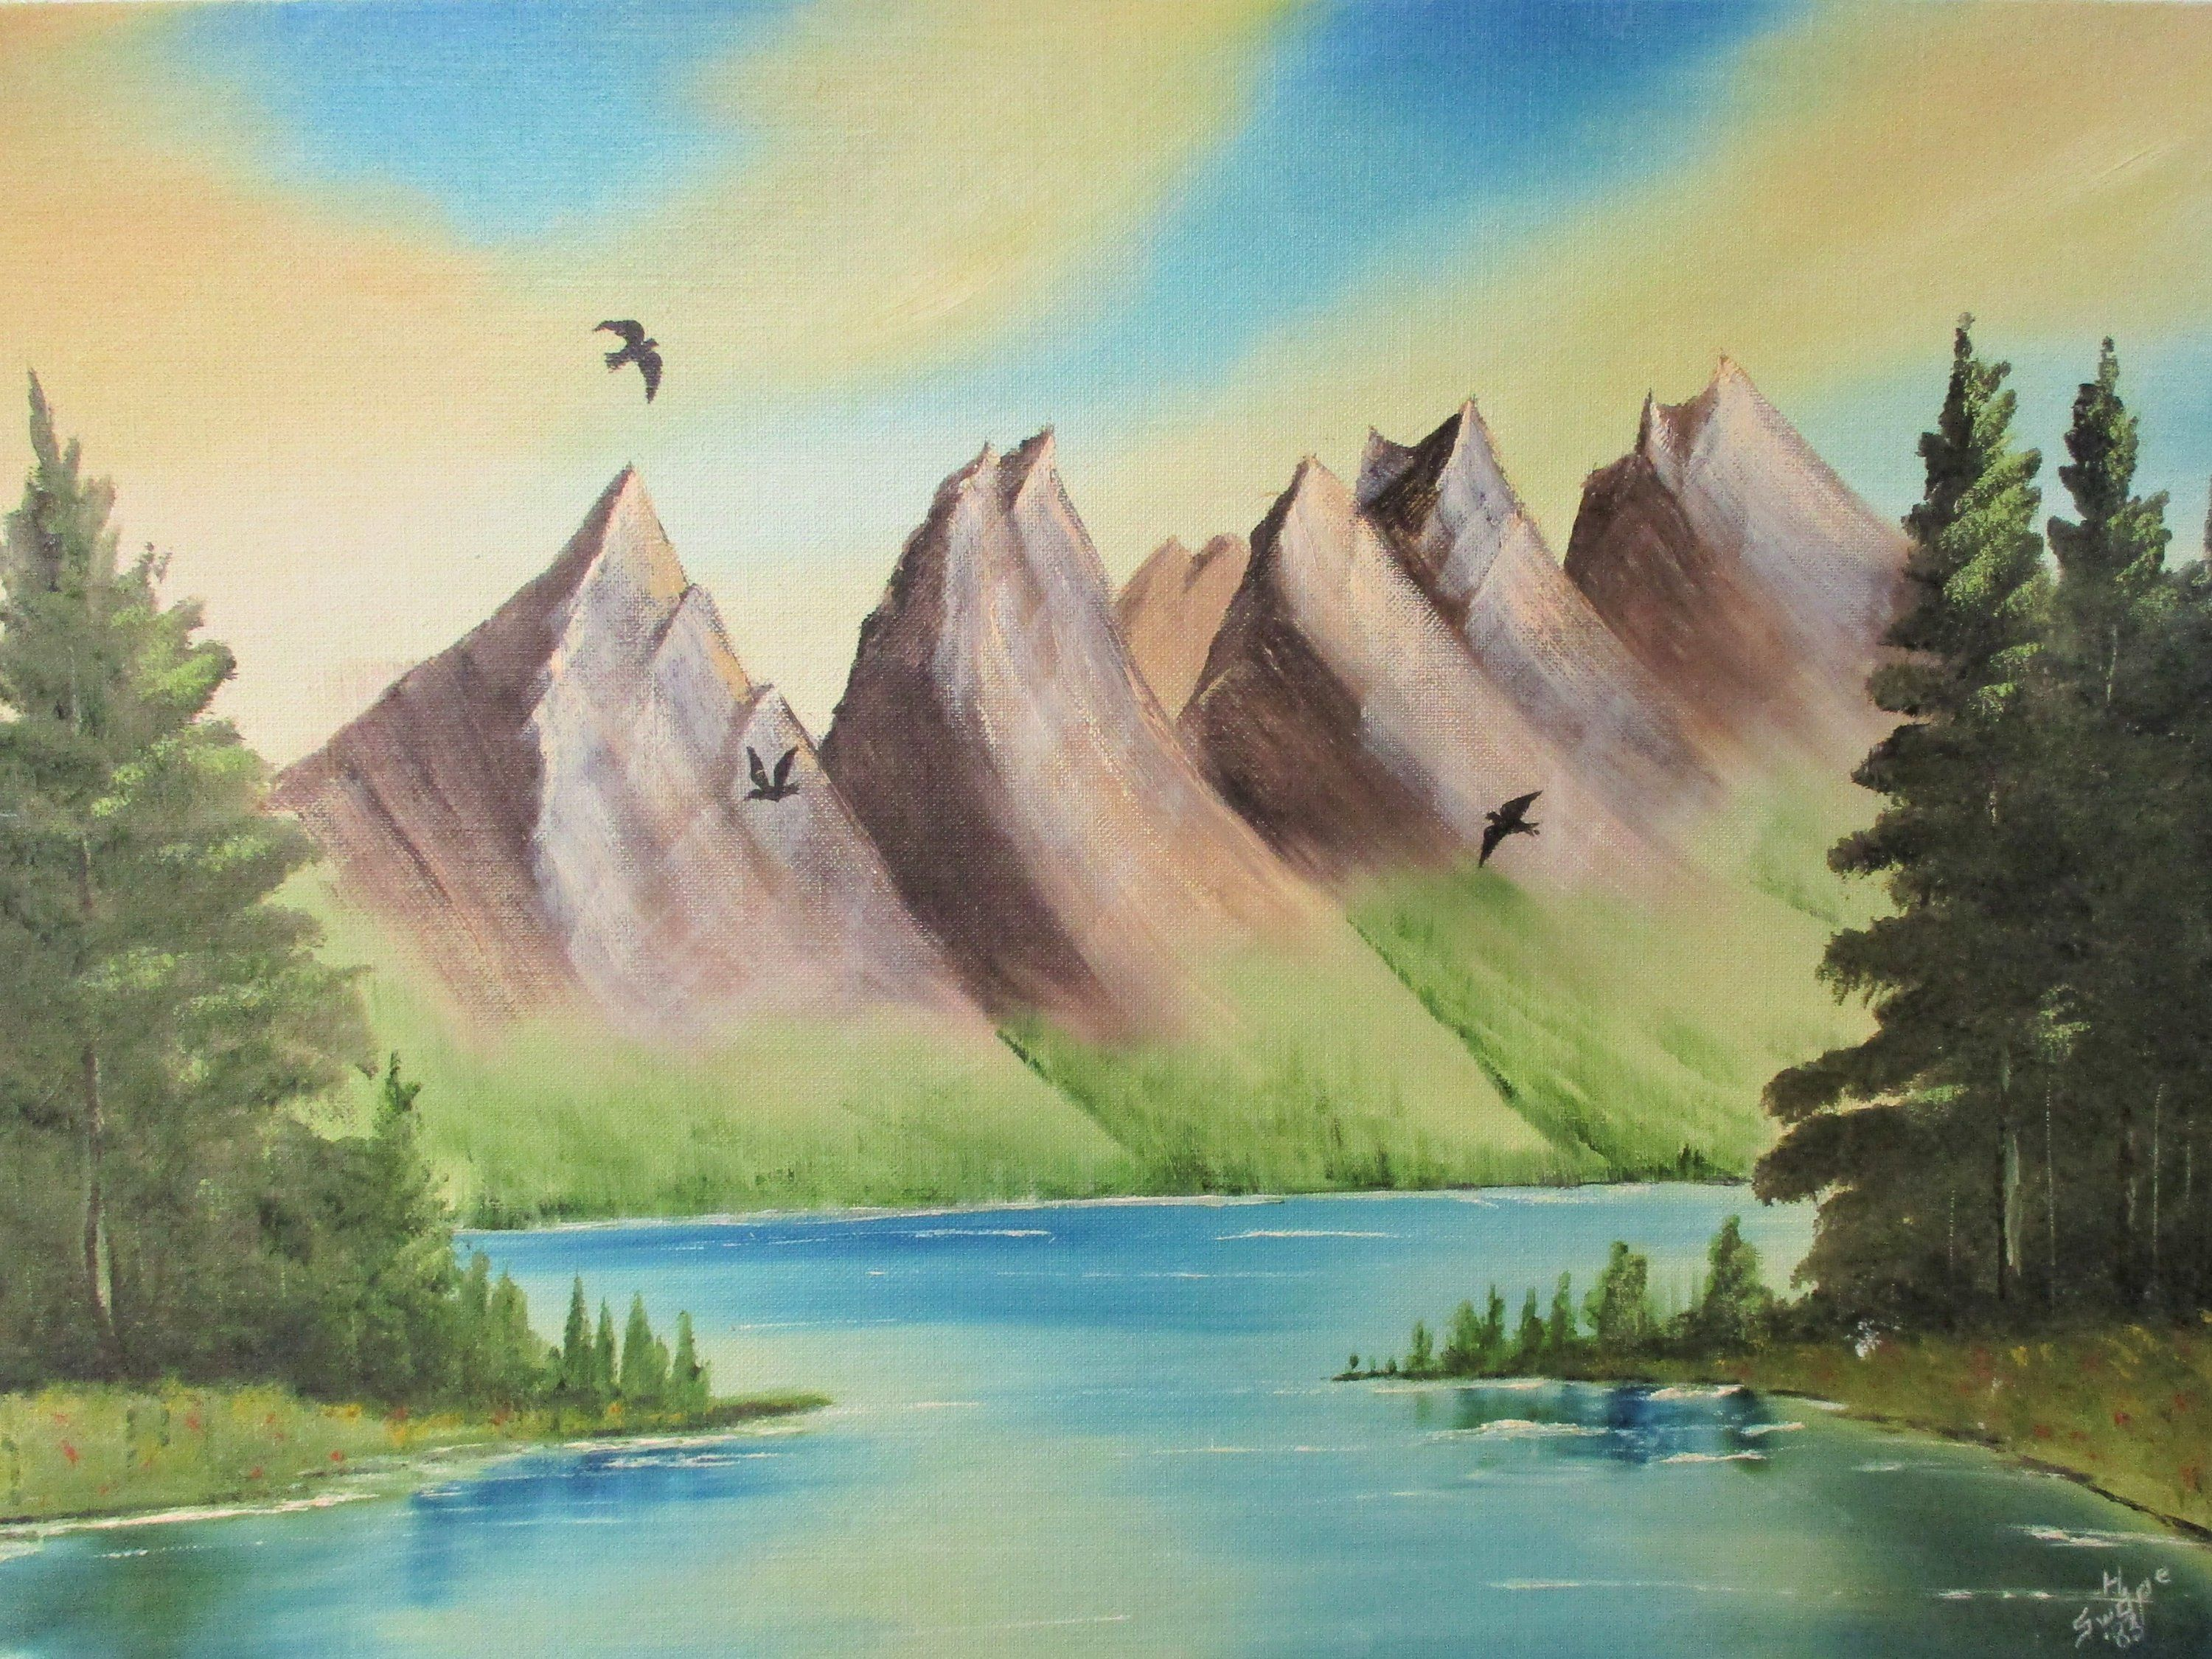 Vintage Landscape Painting Original Signed Mountains Sun Rise Set Sky Trees River Lake Yellow Blue Ha Vintage Landscape Landscape Paintings Mountain Paintings